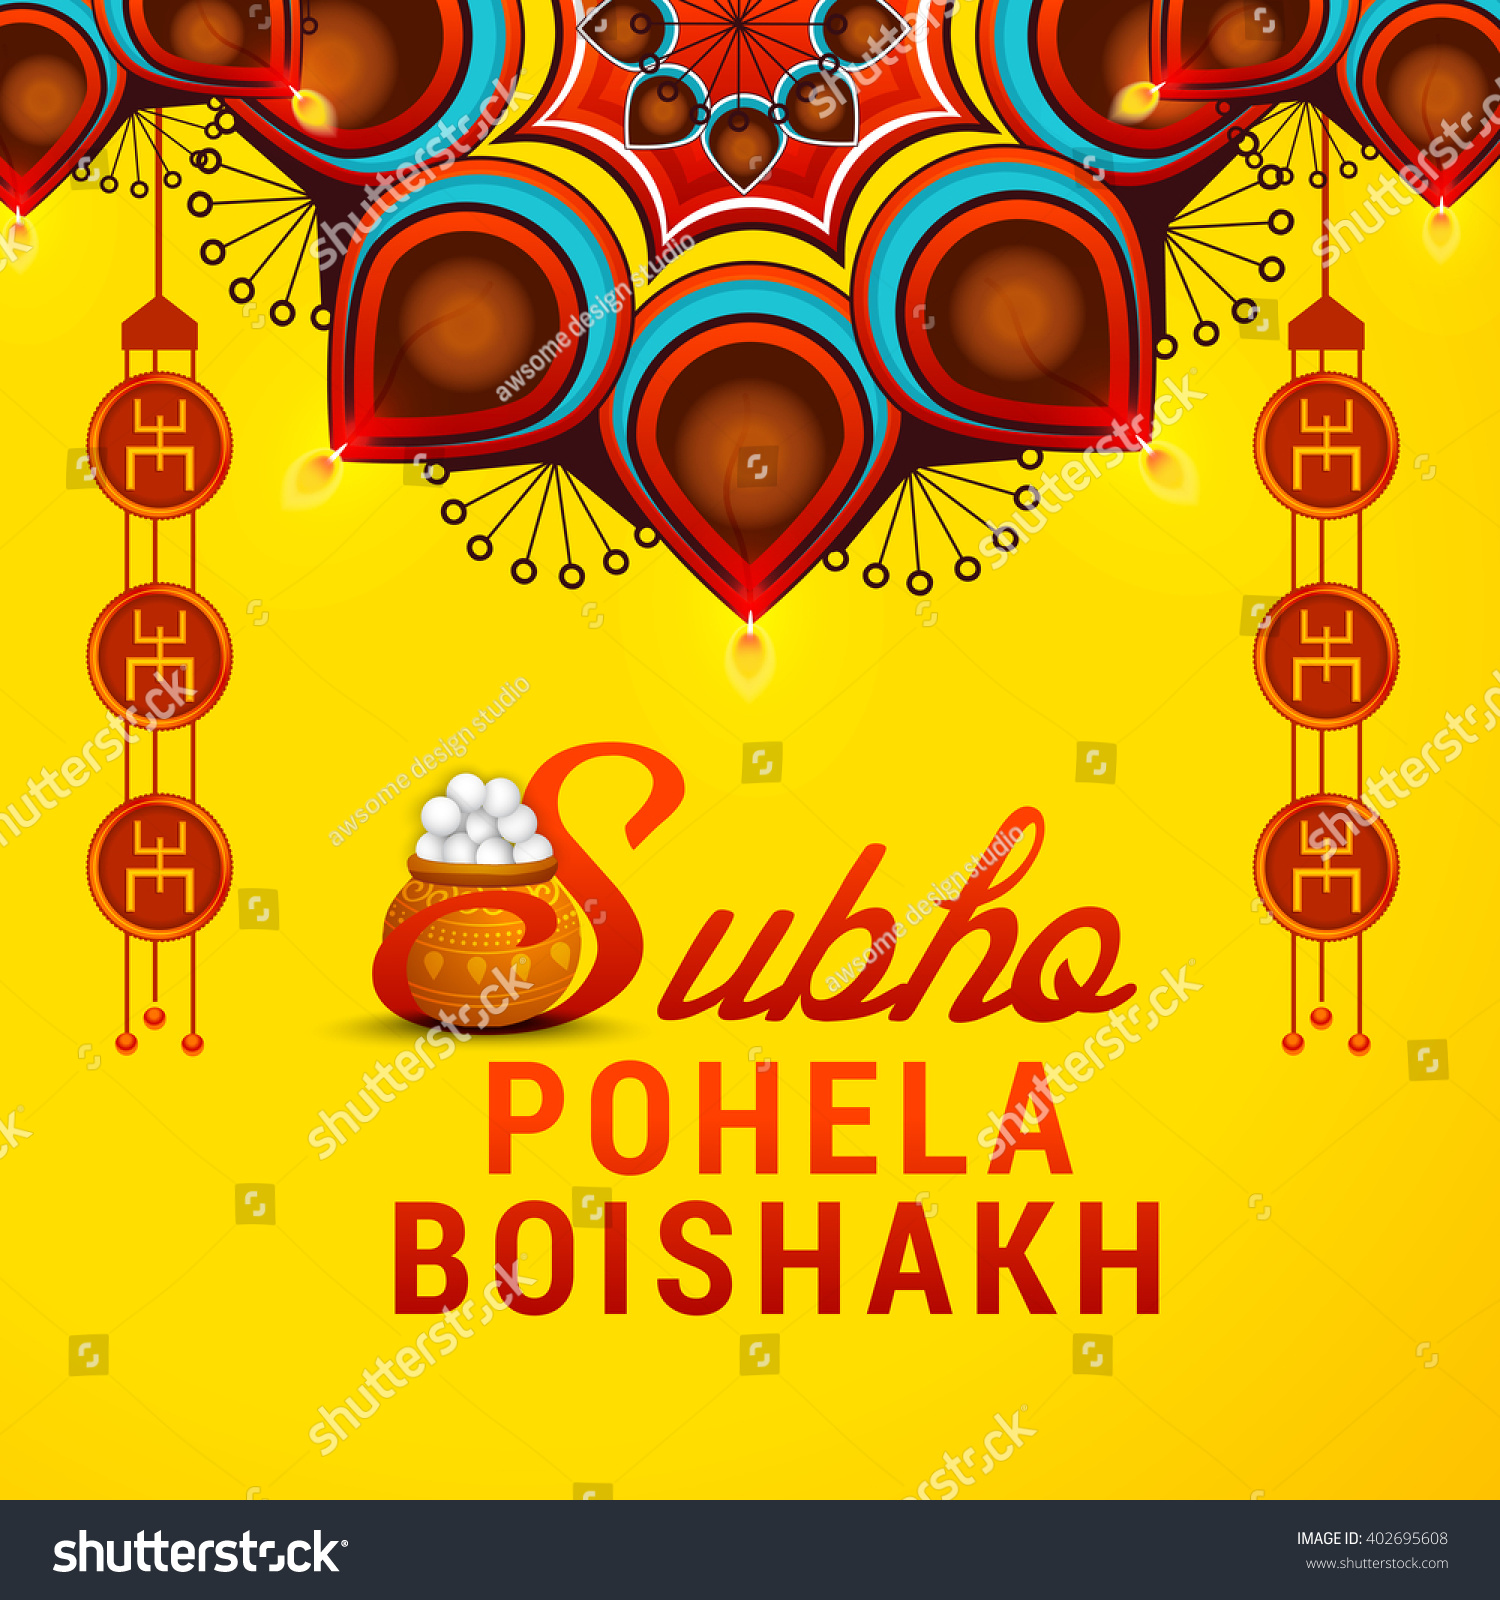 vector illustration of bengali new year subho pohela boishakh in bengali typography with a mud pot